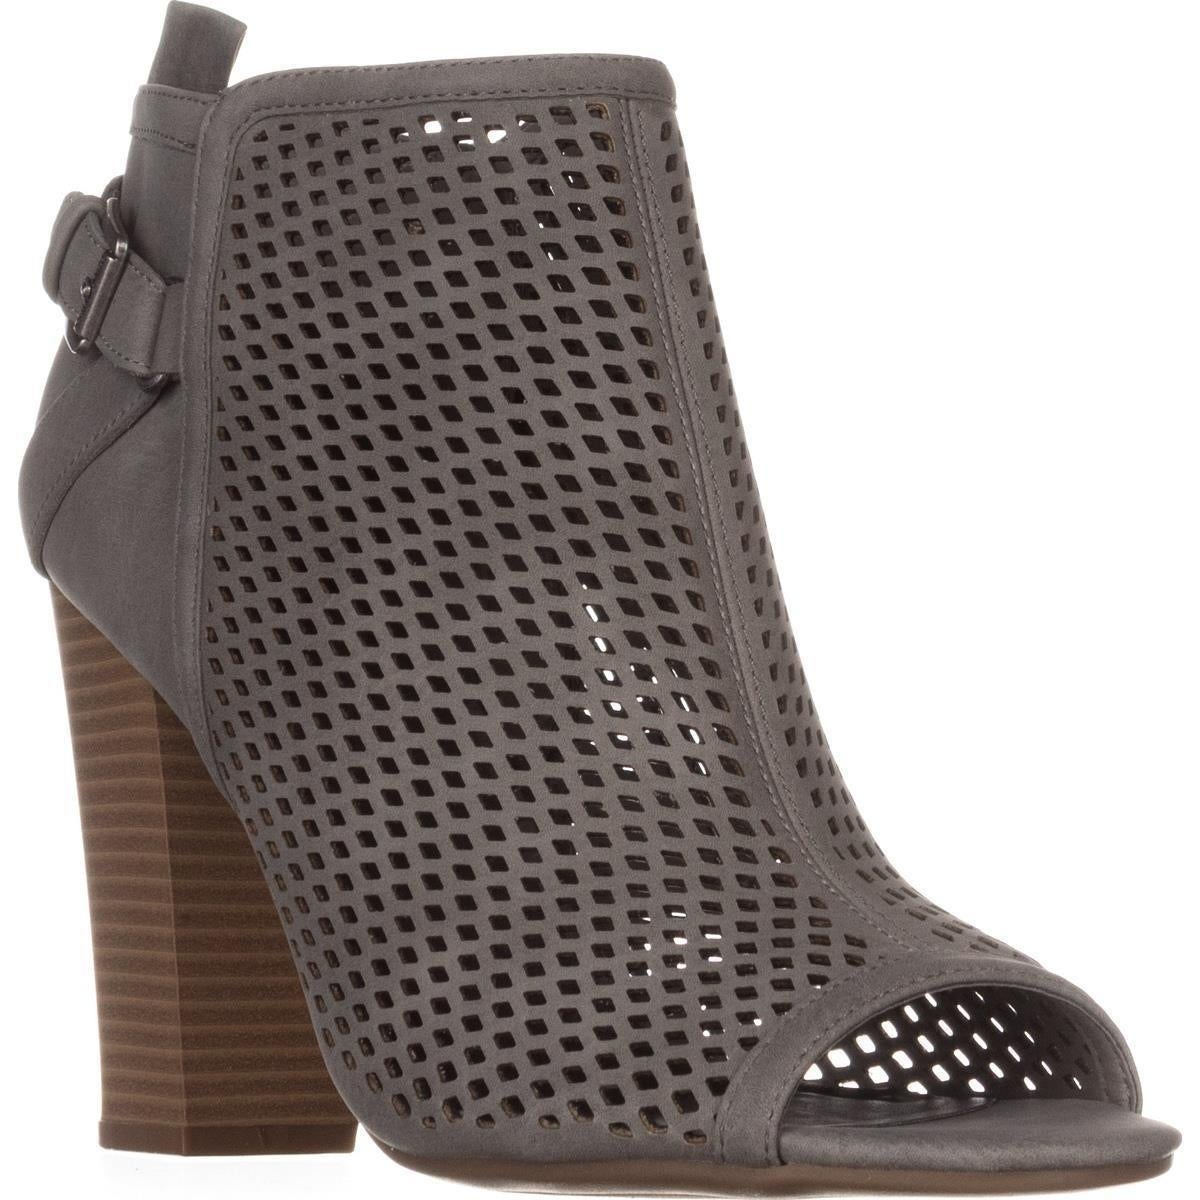 2c7eb2e321f53 Buy Guess Women's Boots Online at Overstock | Our Best Women's Shoes Deals